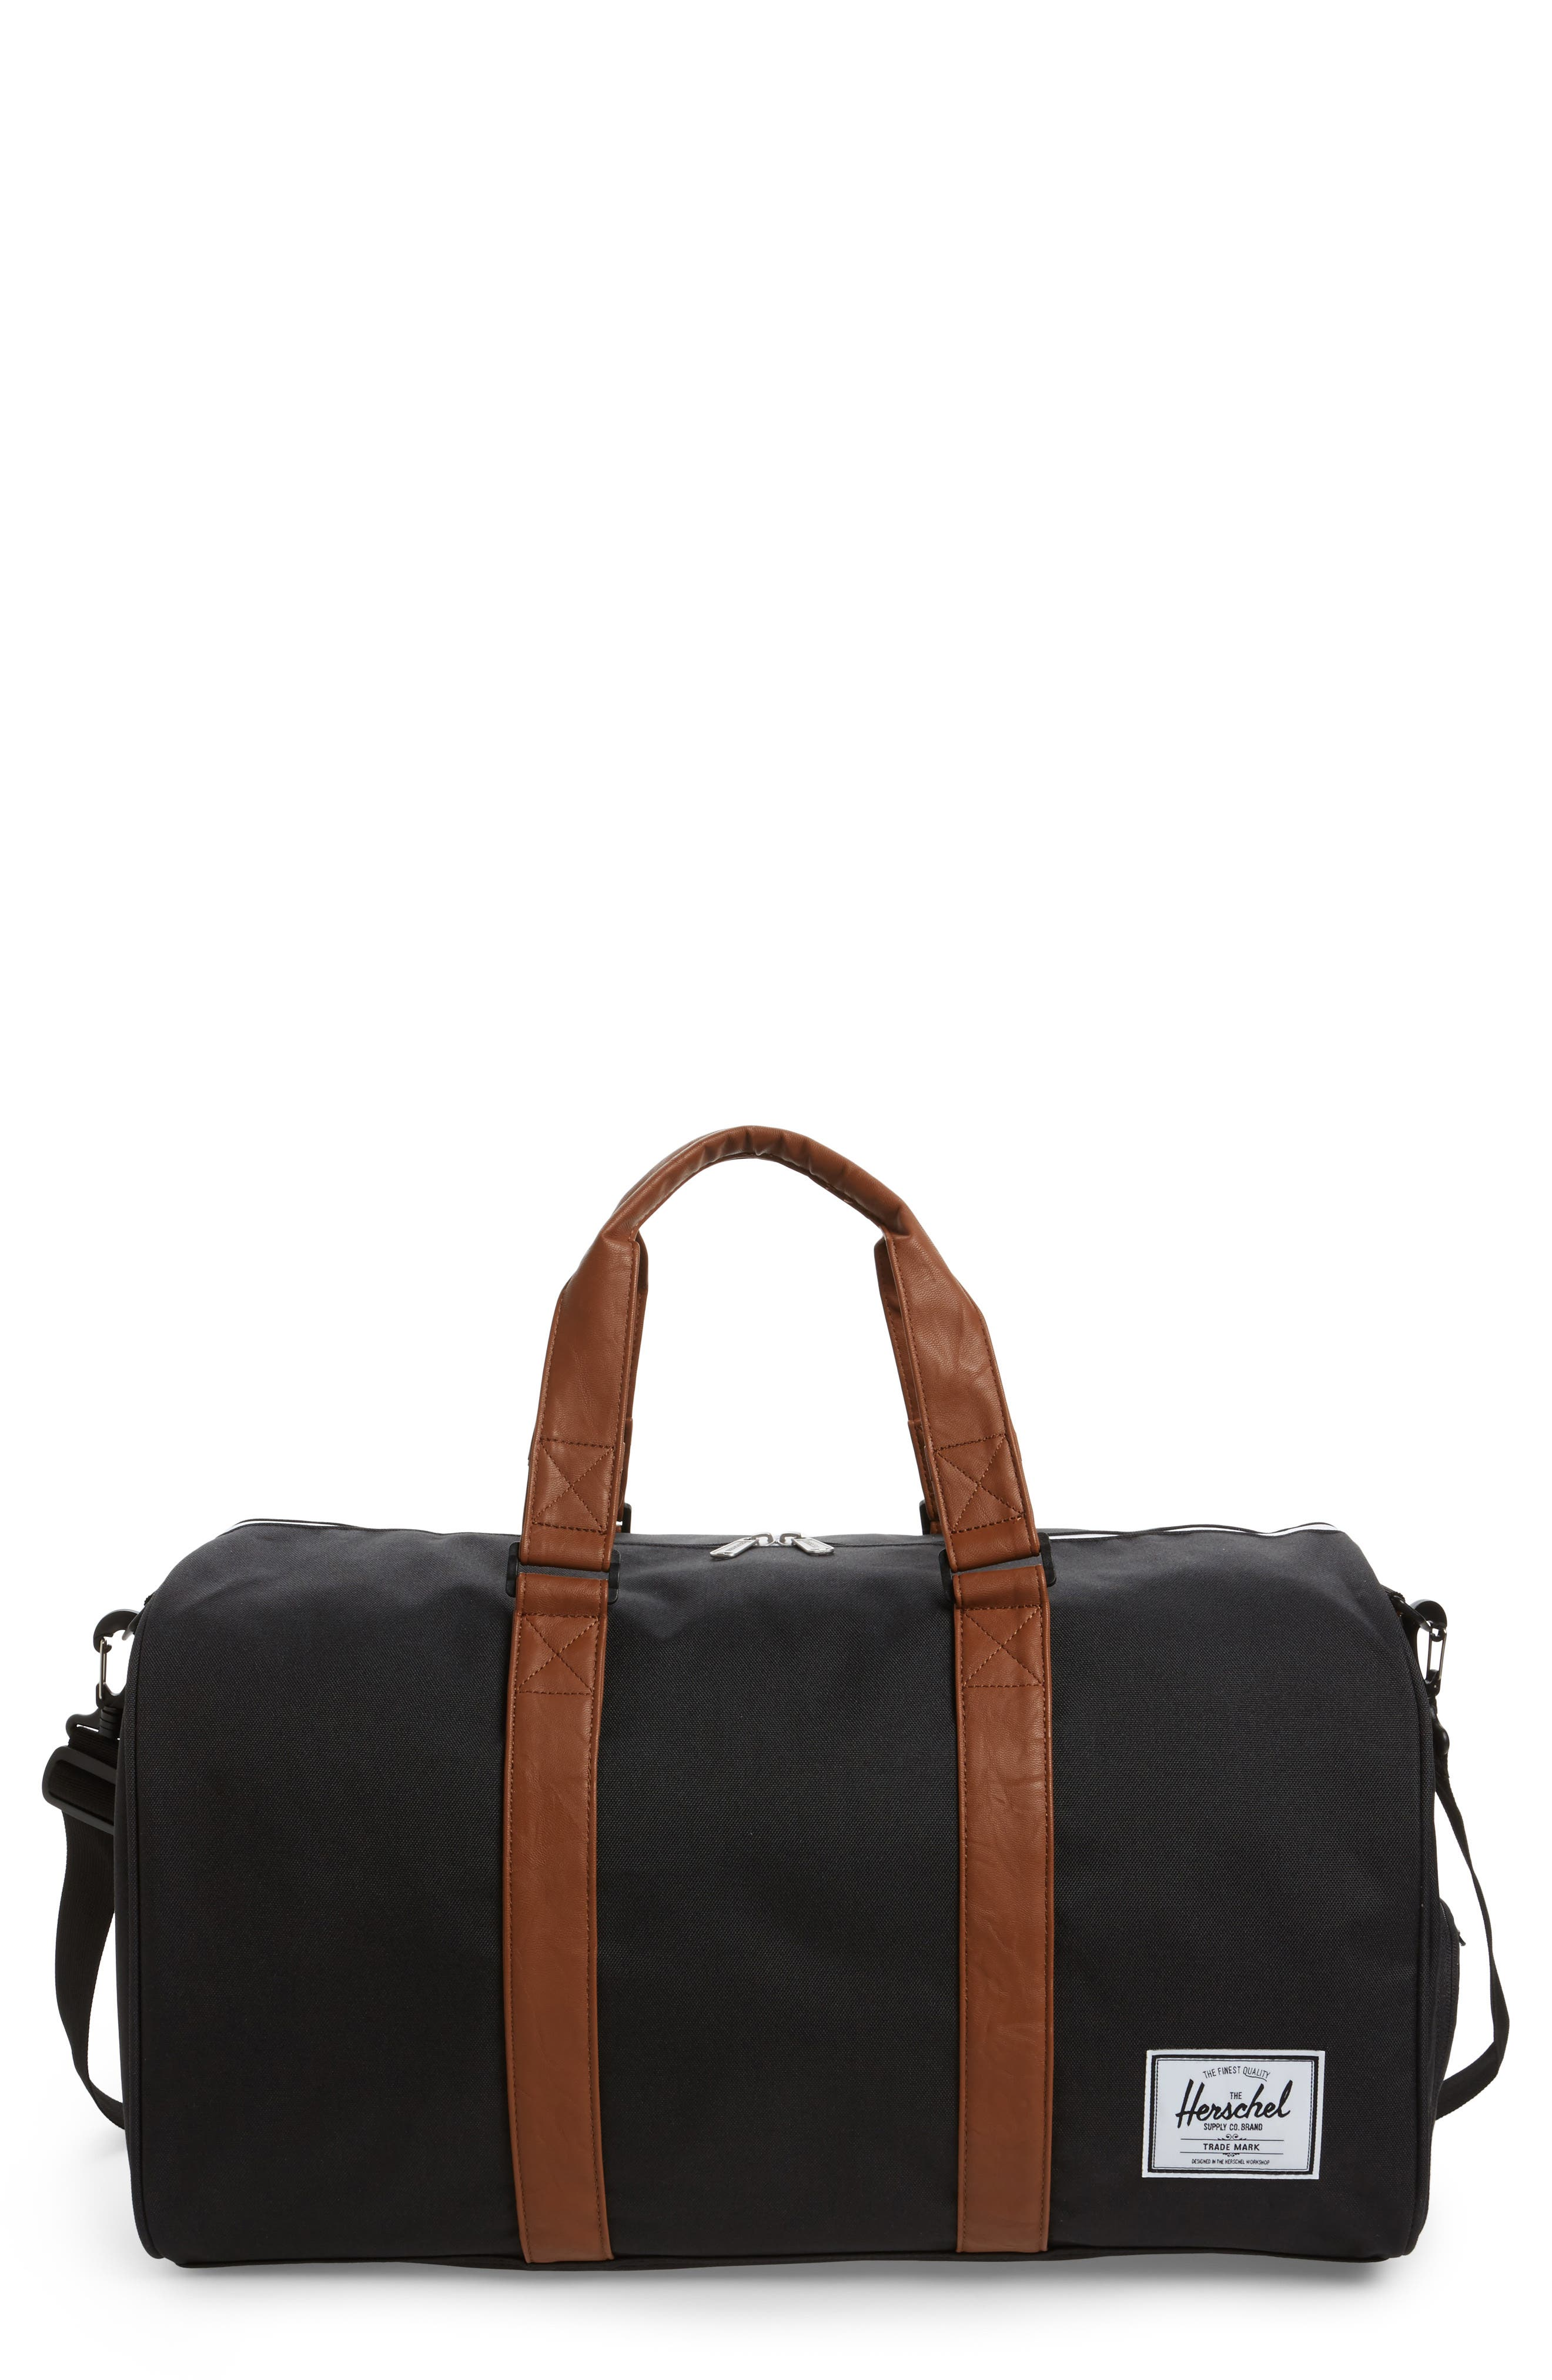 'Novel' Duffel Bag,                         Main,                         color, BLACK/ TAN